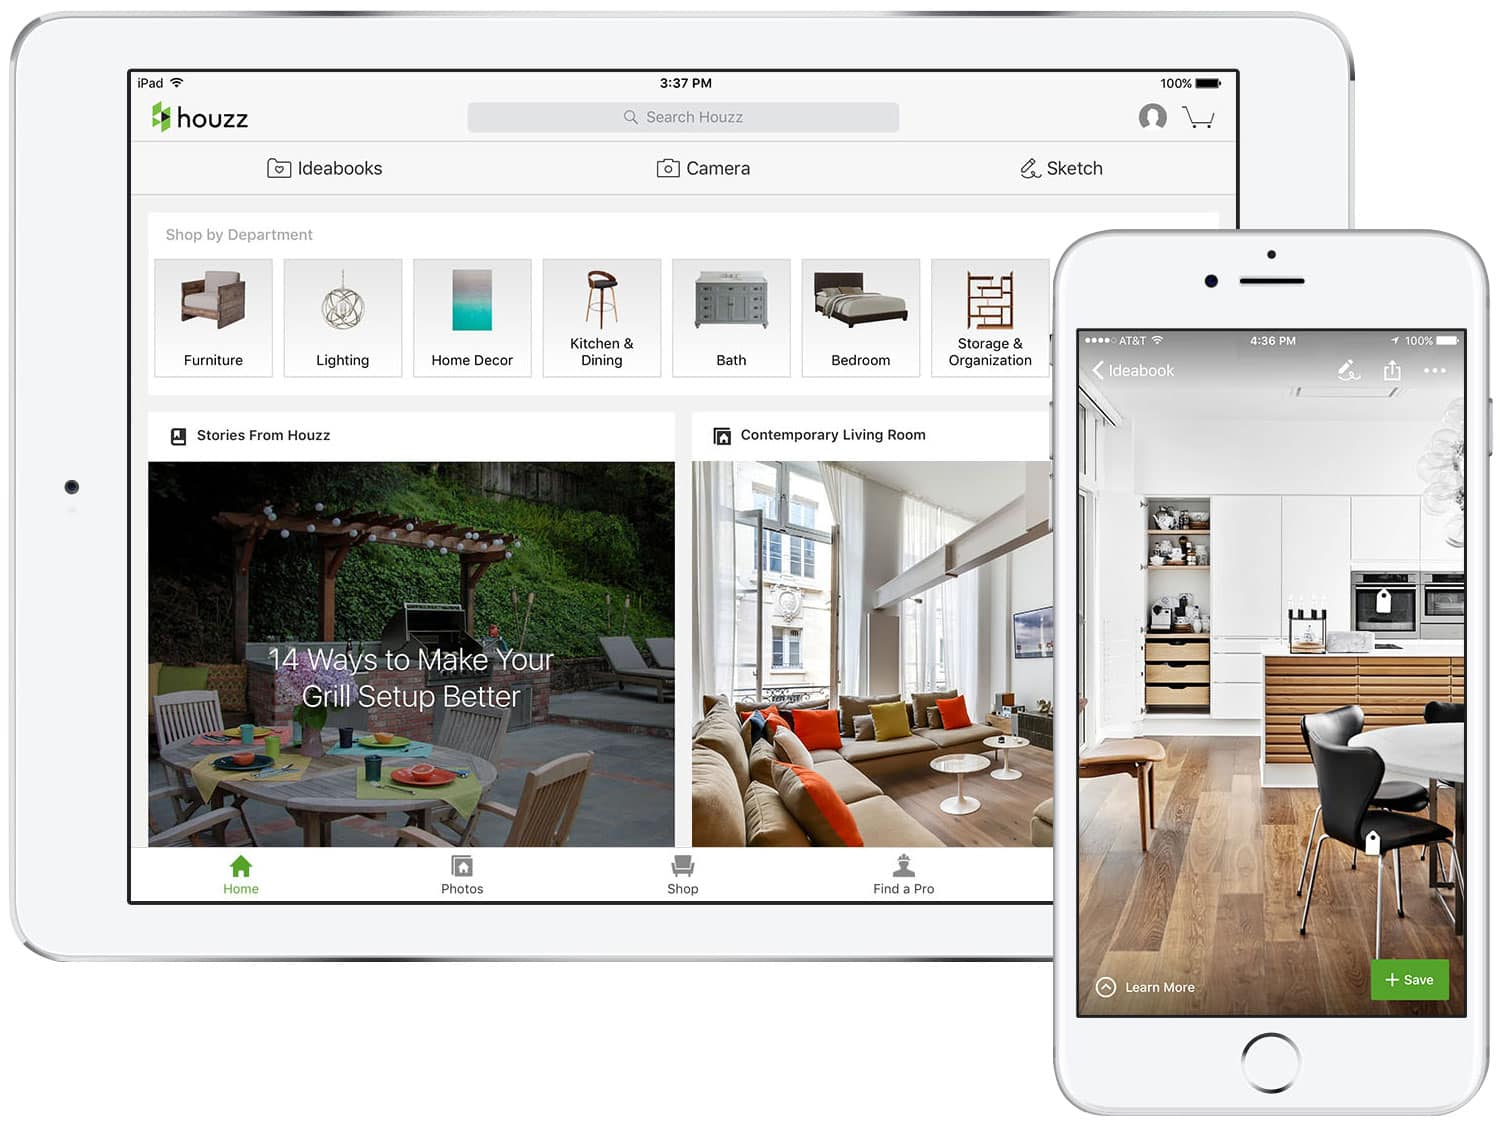 Houzz Is, Arguably, The Mother Of All Design Apps U2014 CNN Once Called It The  U201cWikipedia Of Interior And Exterior Design.u201d Its Database Contains More  Than 14 ...